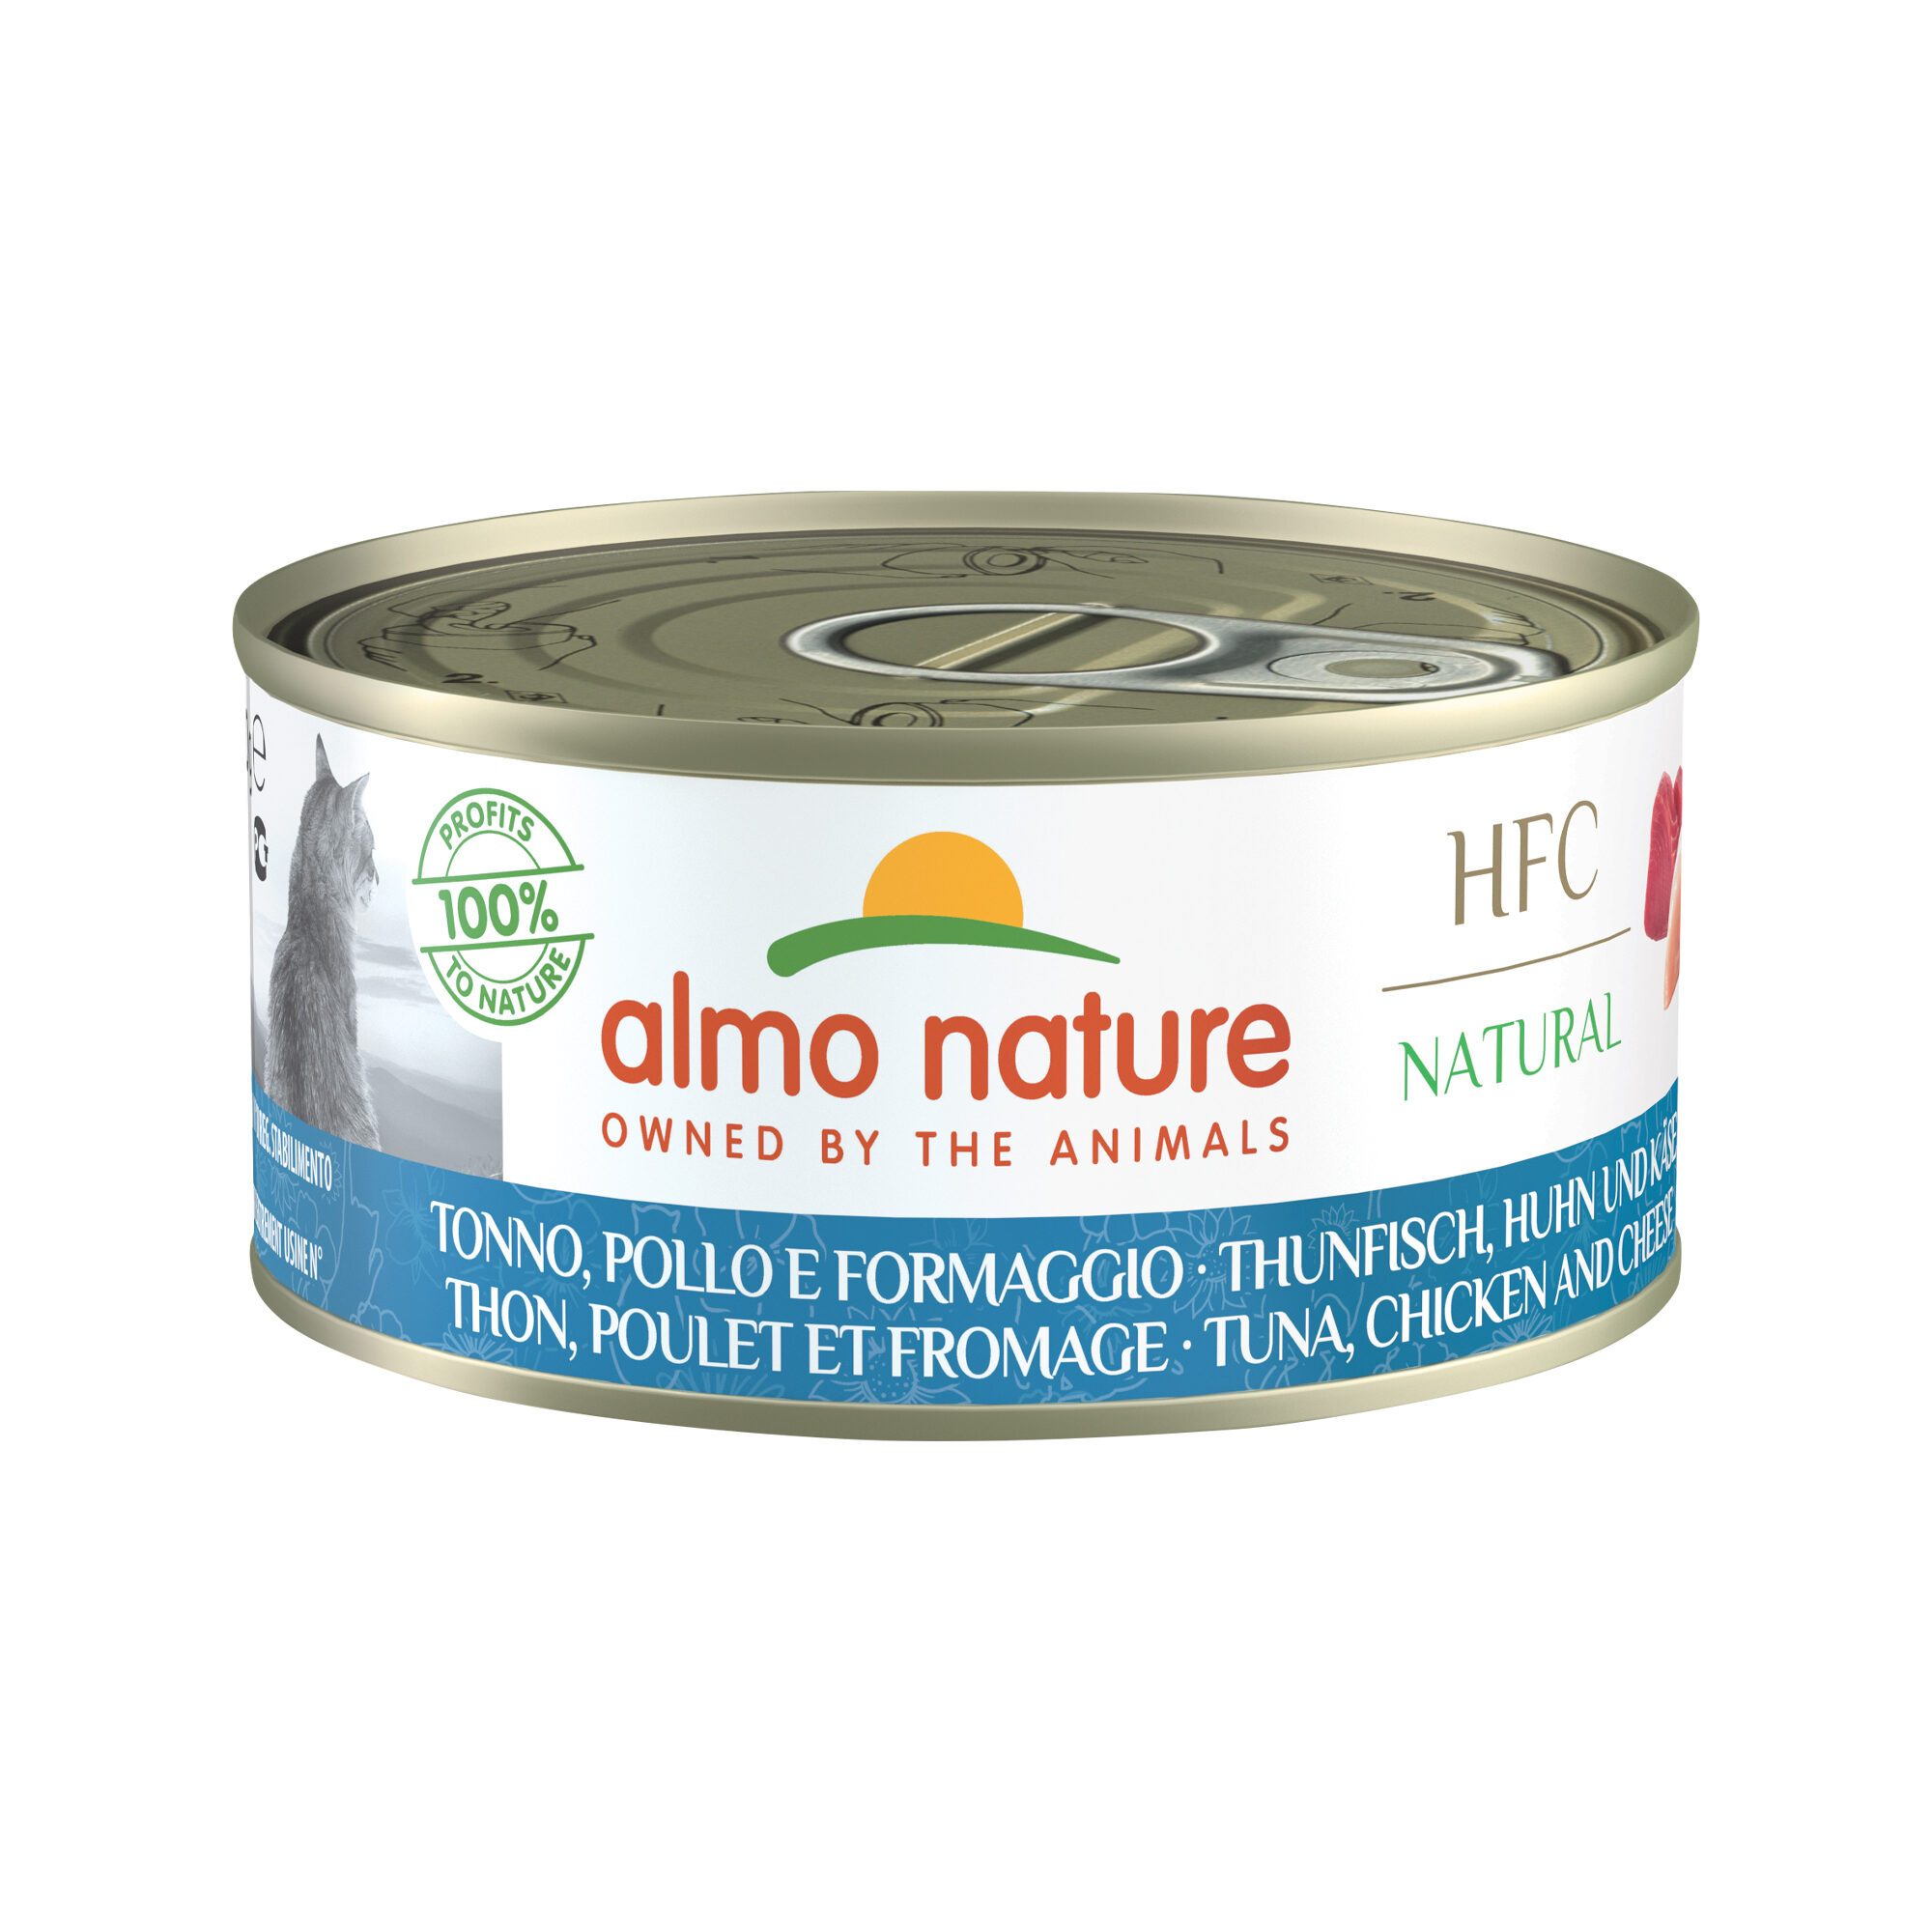 Almo Nature HFC 150 Natural Alimentation pour chat - Thon, poulet & fromage - 24 x 150 g